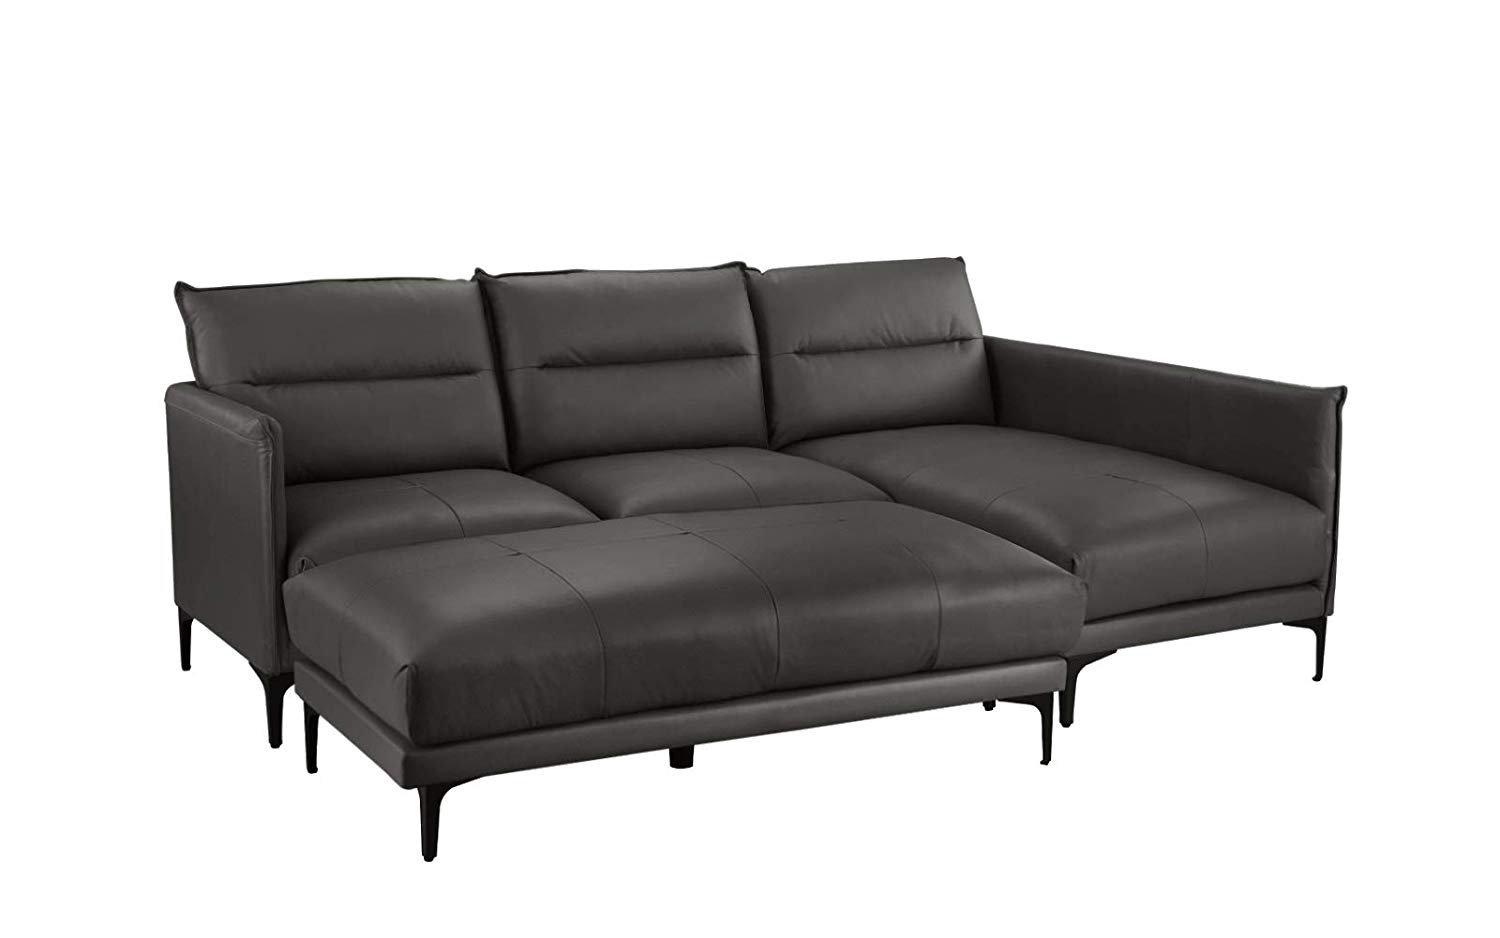 Pleasant Mid Century Leather Sectional Sofa L Shape Couch With Rectangular Ottoman Black Machost Co Dining Chair Design Ideas Machostcouk